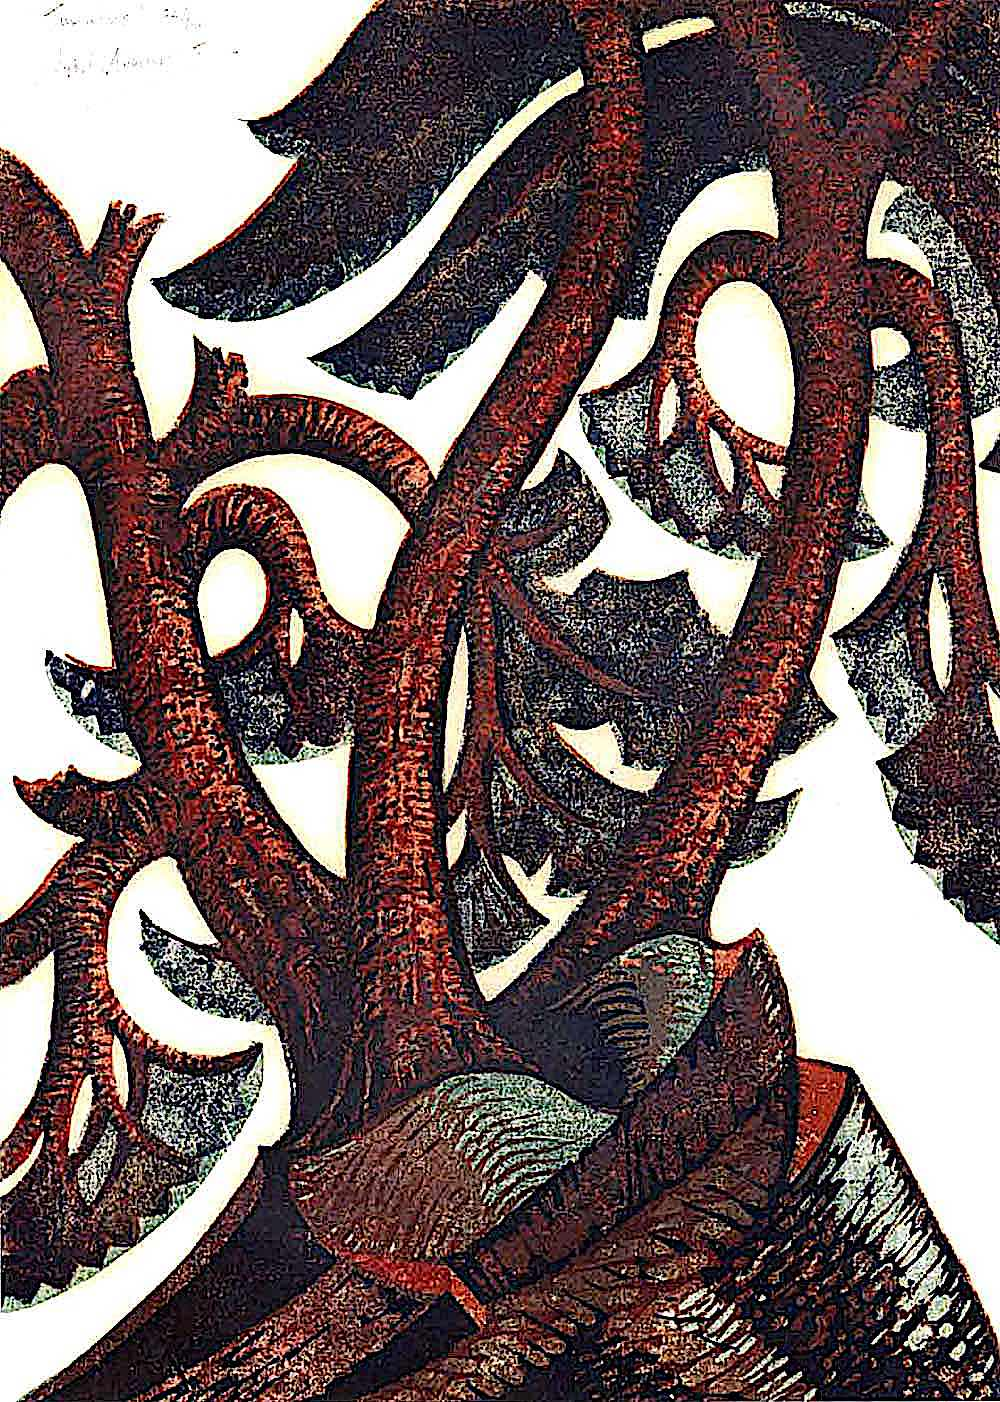 Sybil Andrews trees in a linocut print